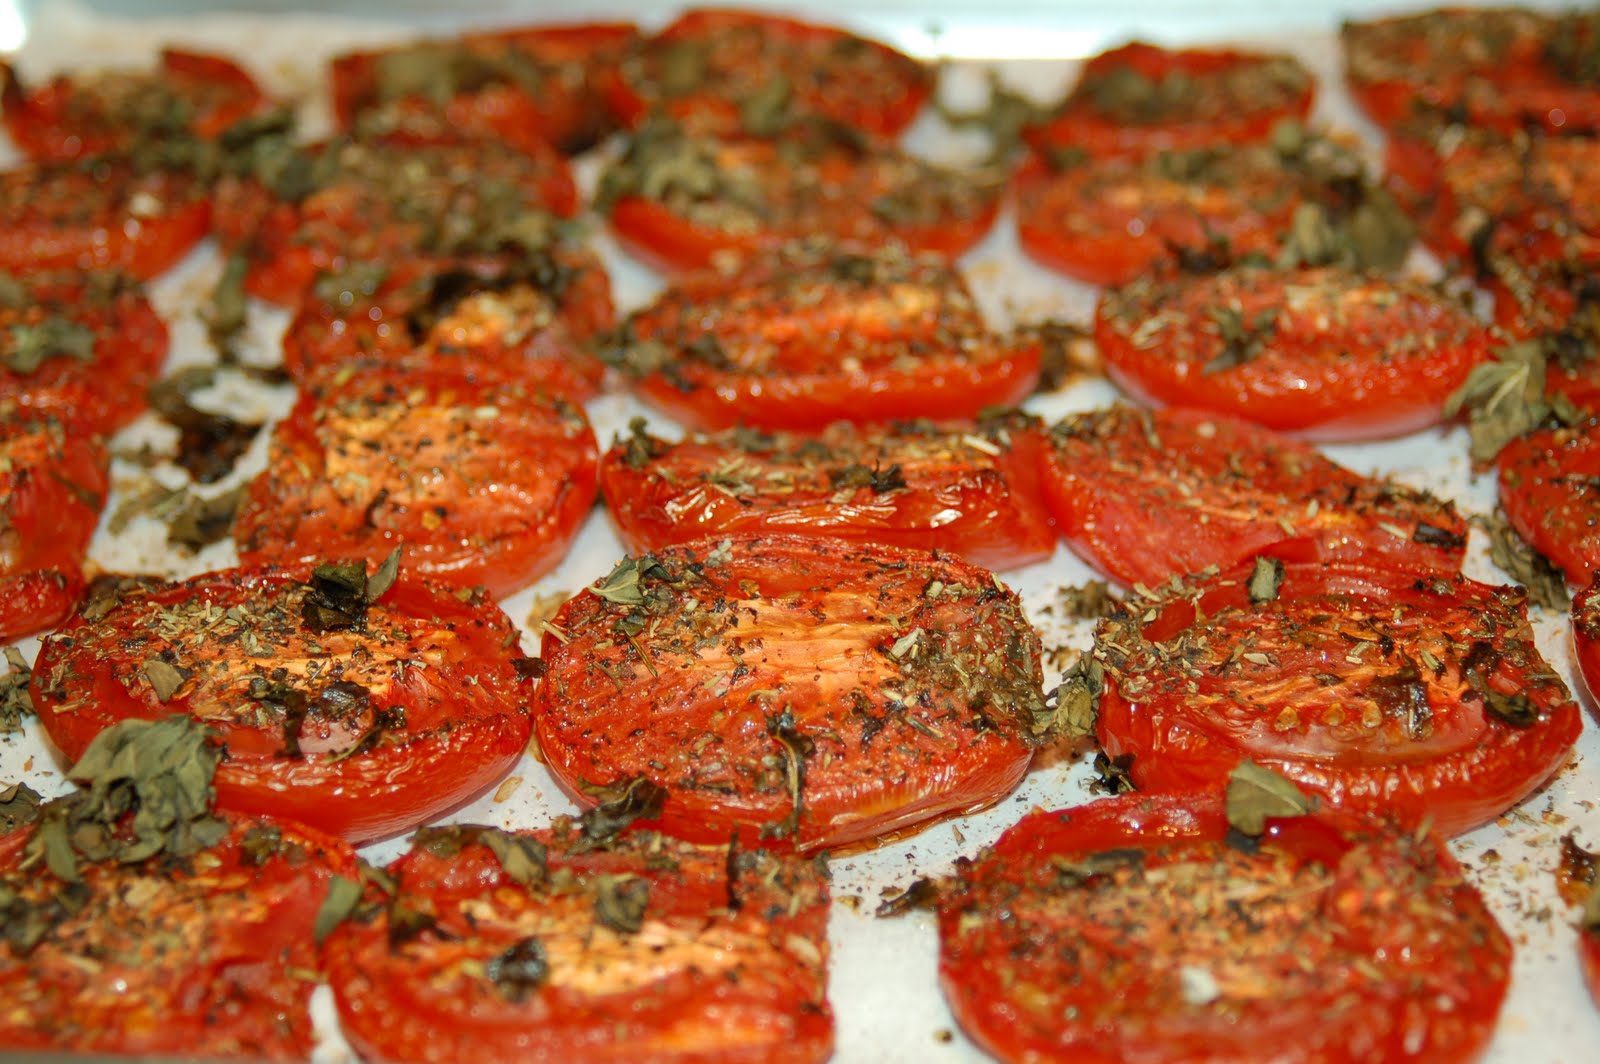 ... slow roasting, your tomatoes will look slightly caramelized like this